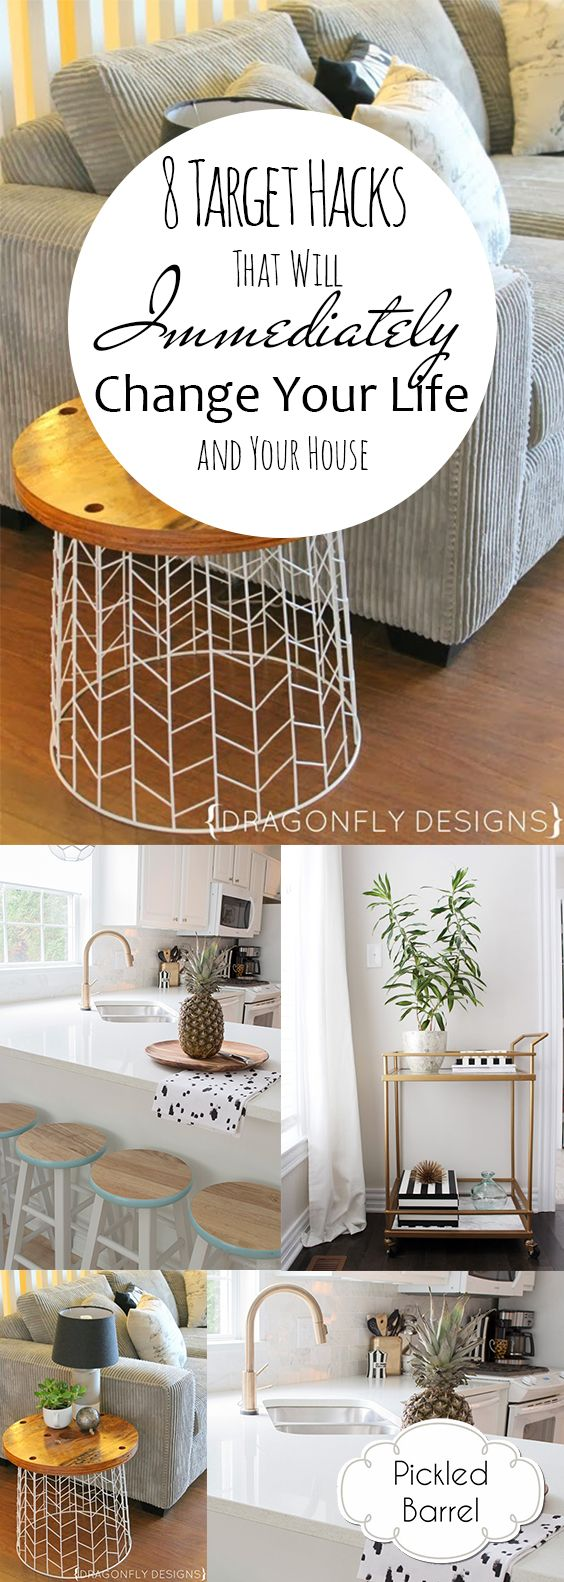 8 Target Hacks That Will Immediately Change Your Life and Your House| Target, Target Shopping Hacks, Shopping at Target, Save Money at Target, Target DIY Projects, Fun Target DIY Projects, Popular Pin